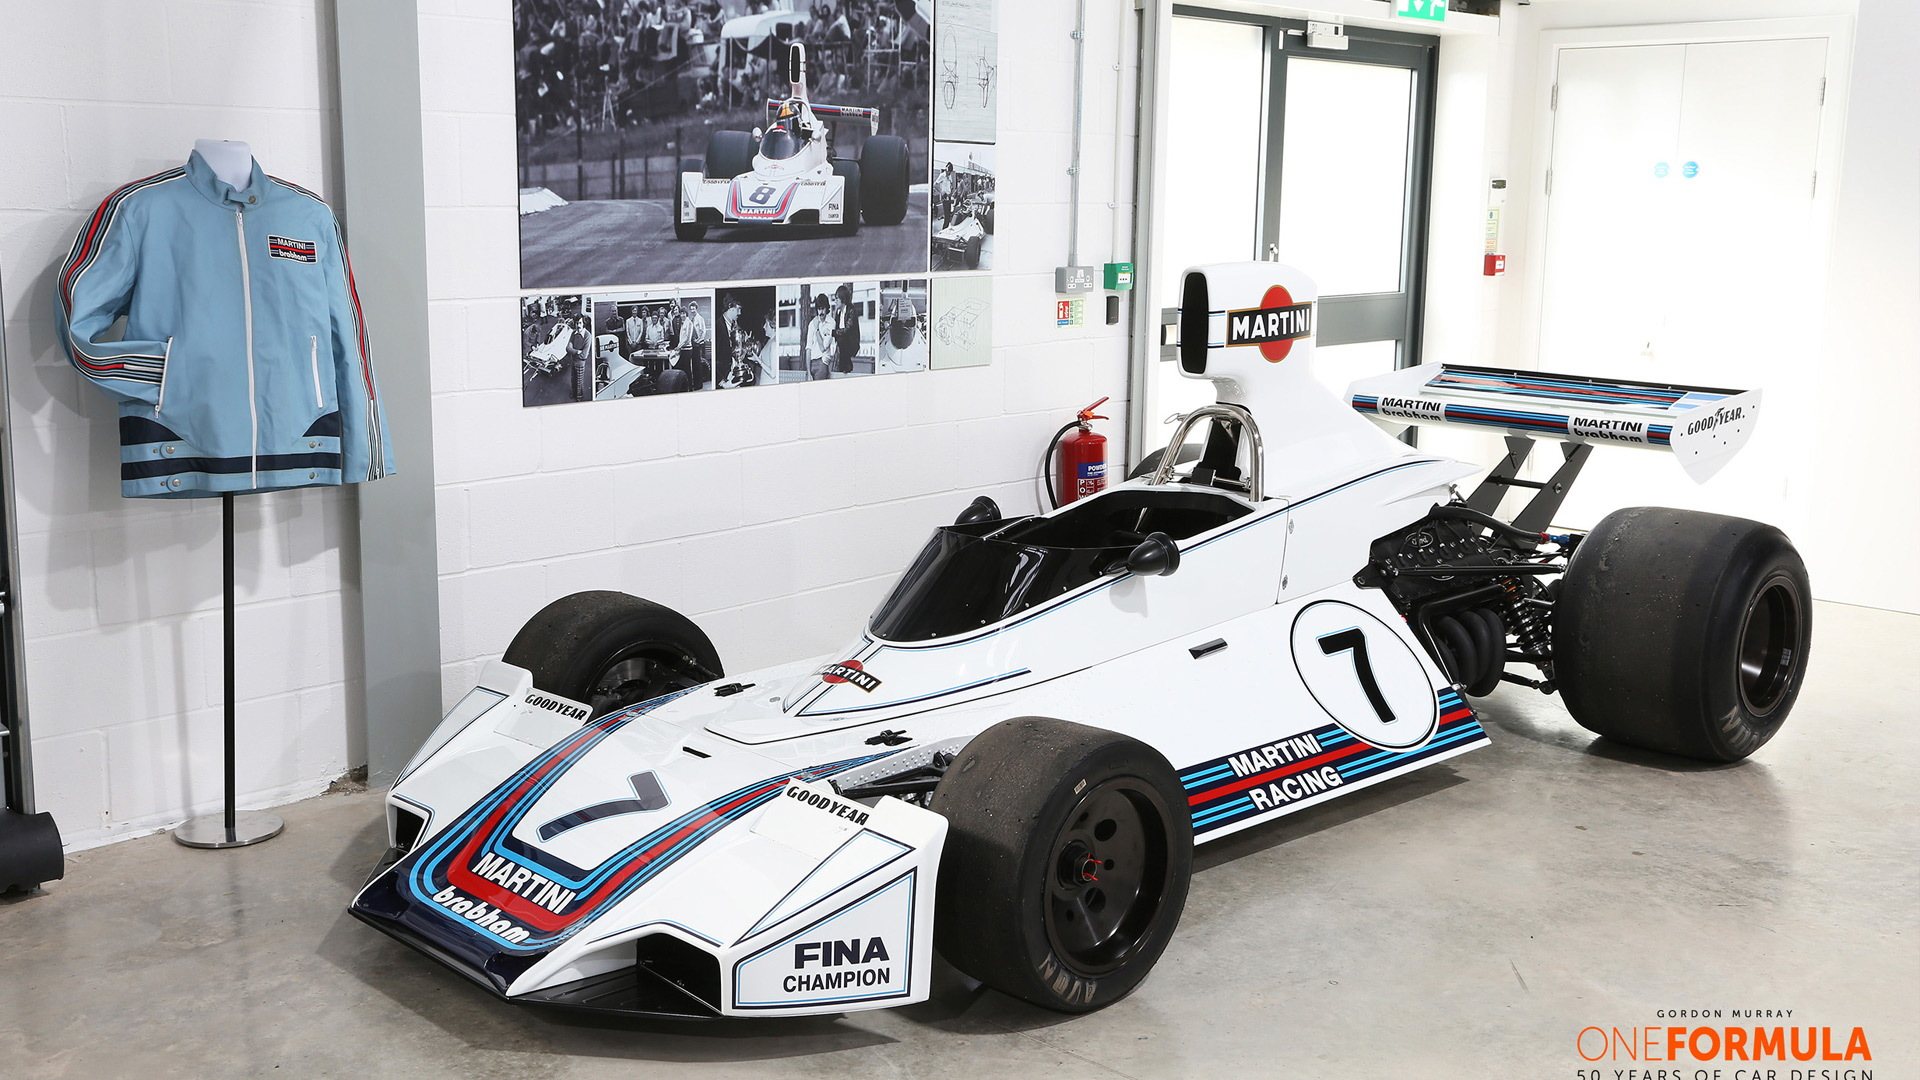 1981 Brabham BT49C Formula One race car